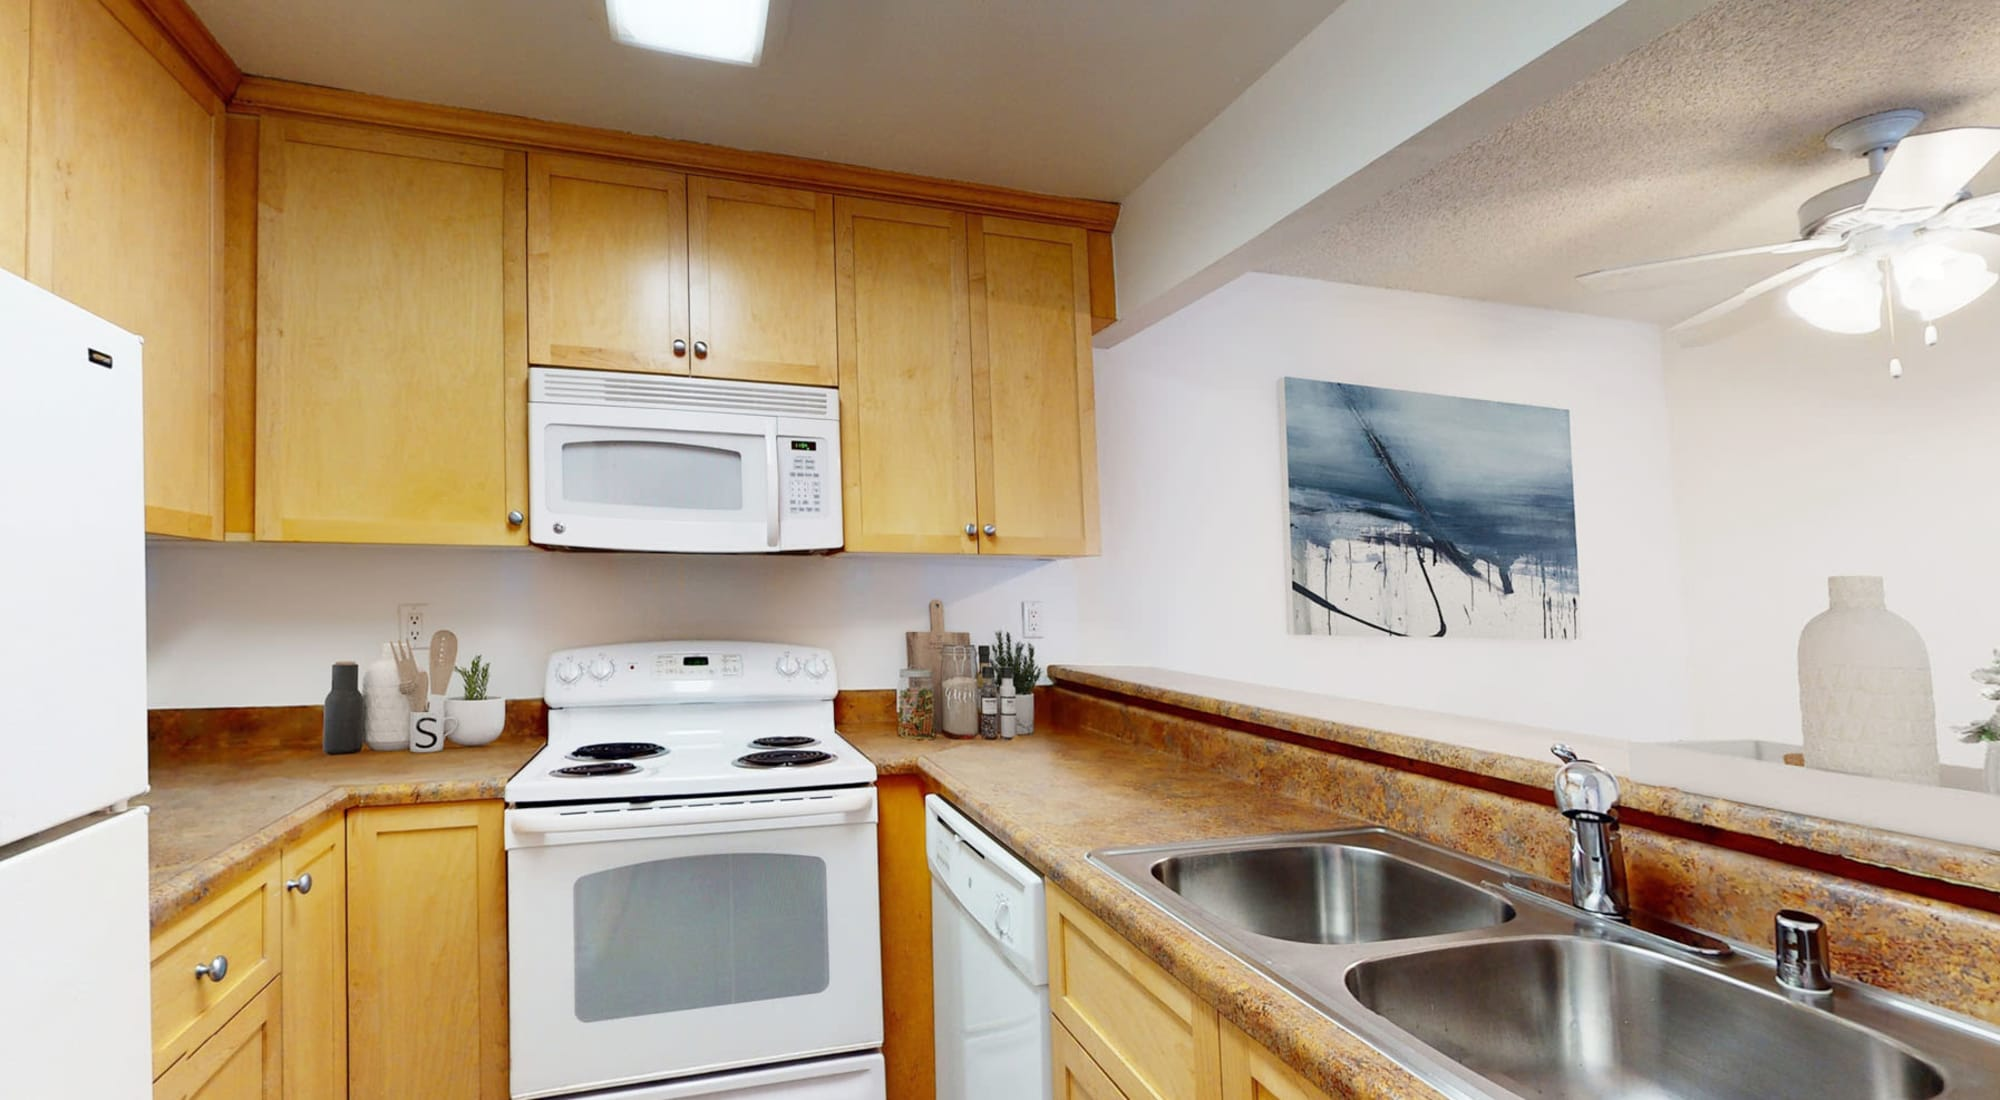 Modern kitchen with granite countertops and a dual-basin sink in a model apartment at Mariners Village in Marina del Rey, California